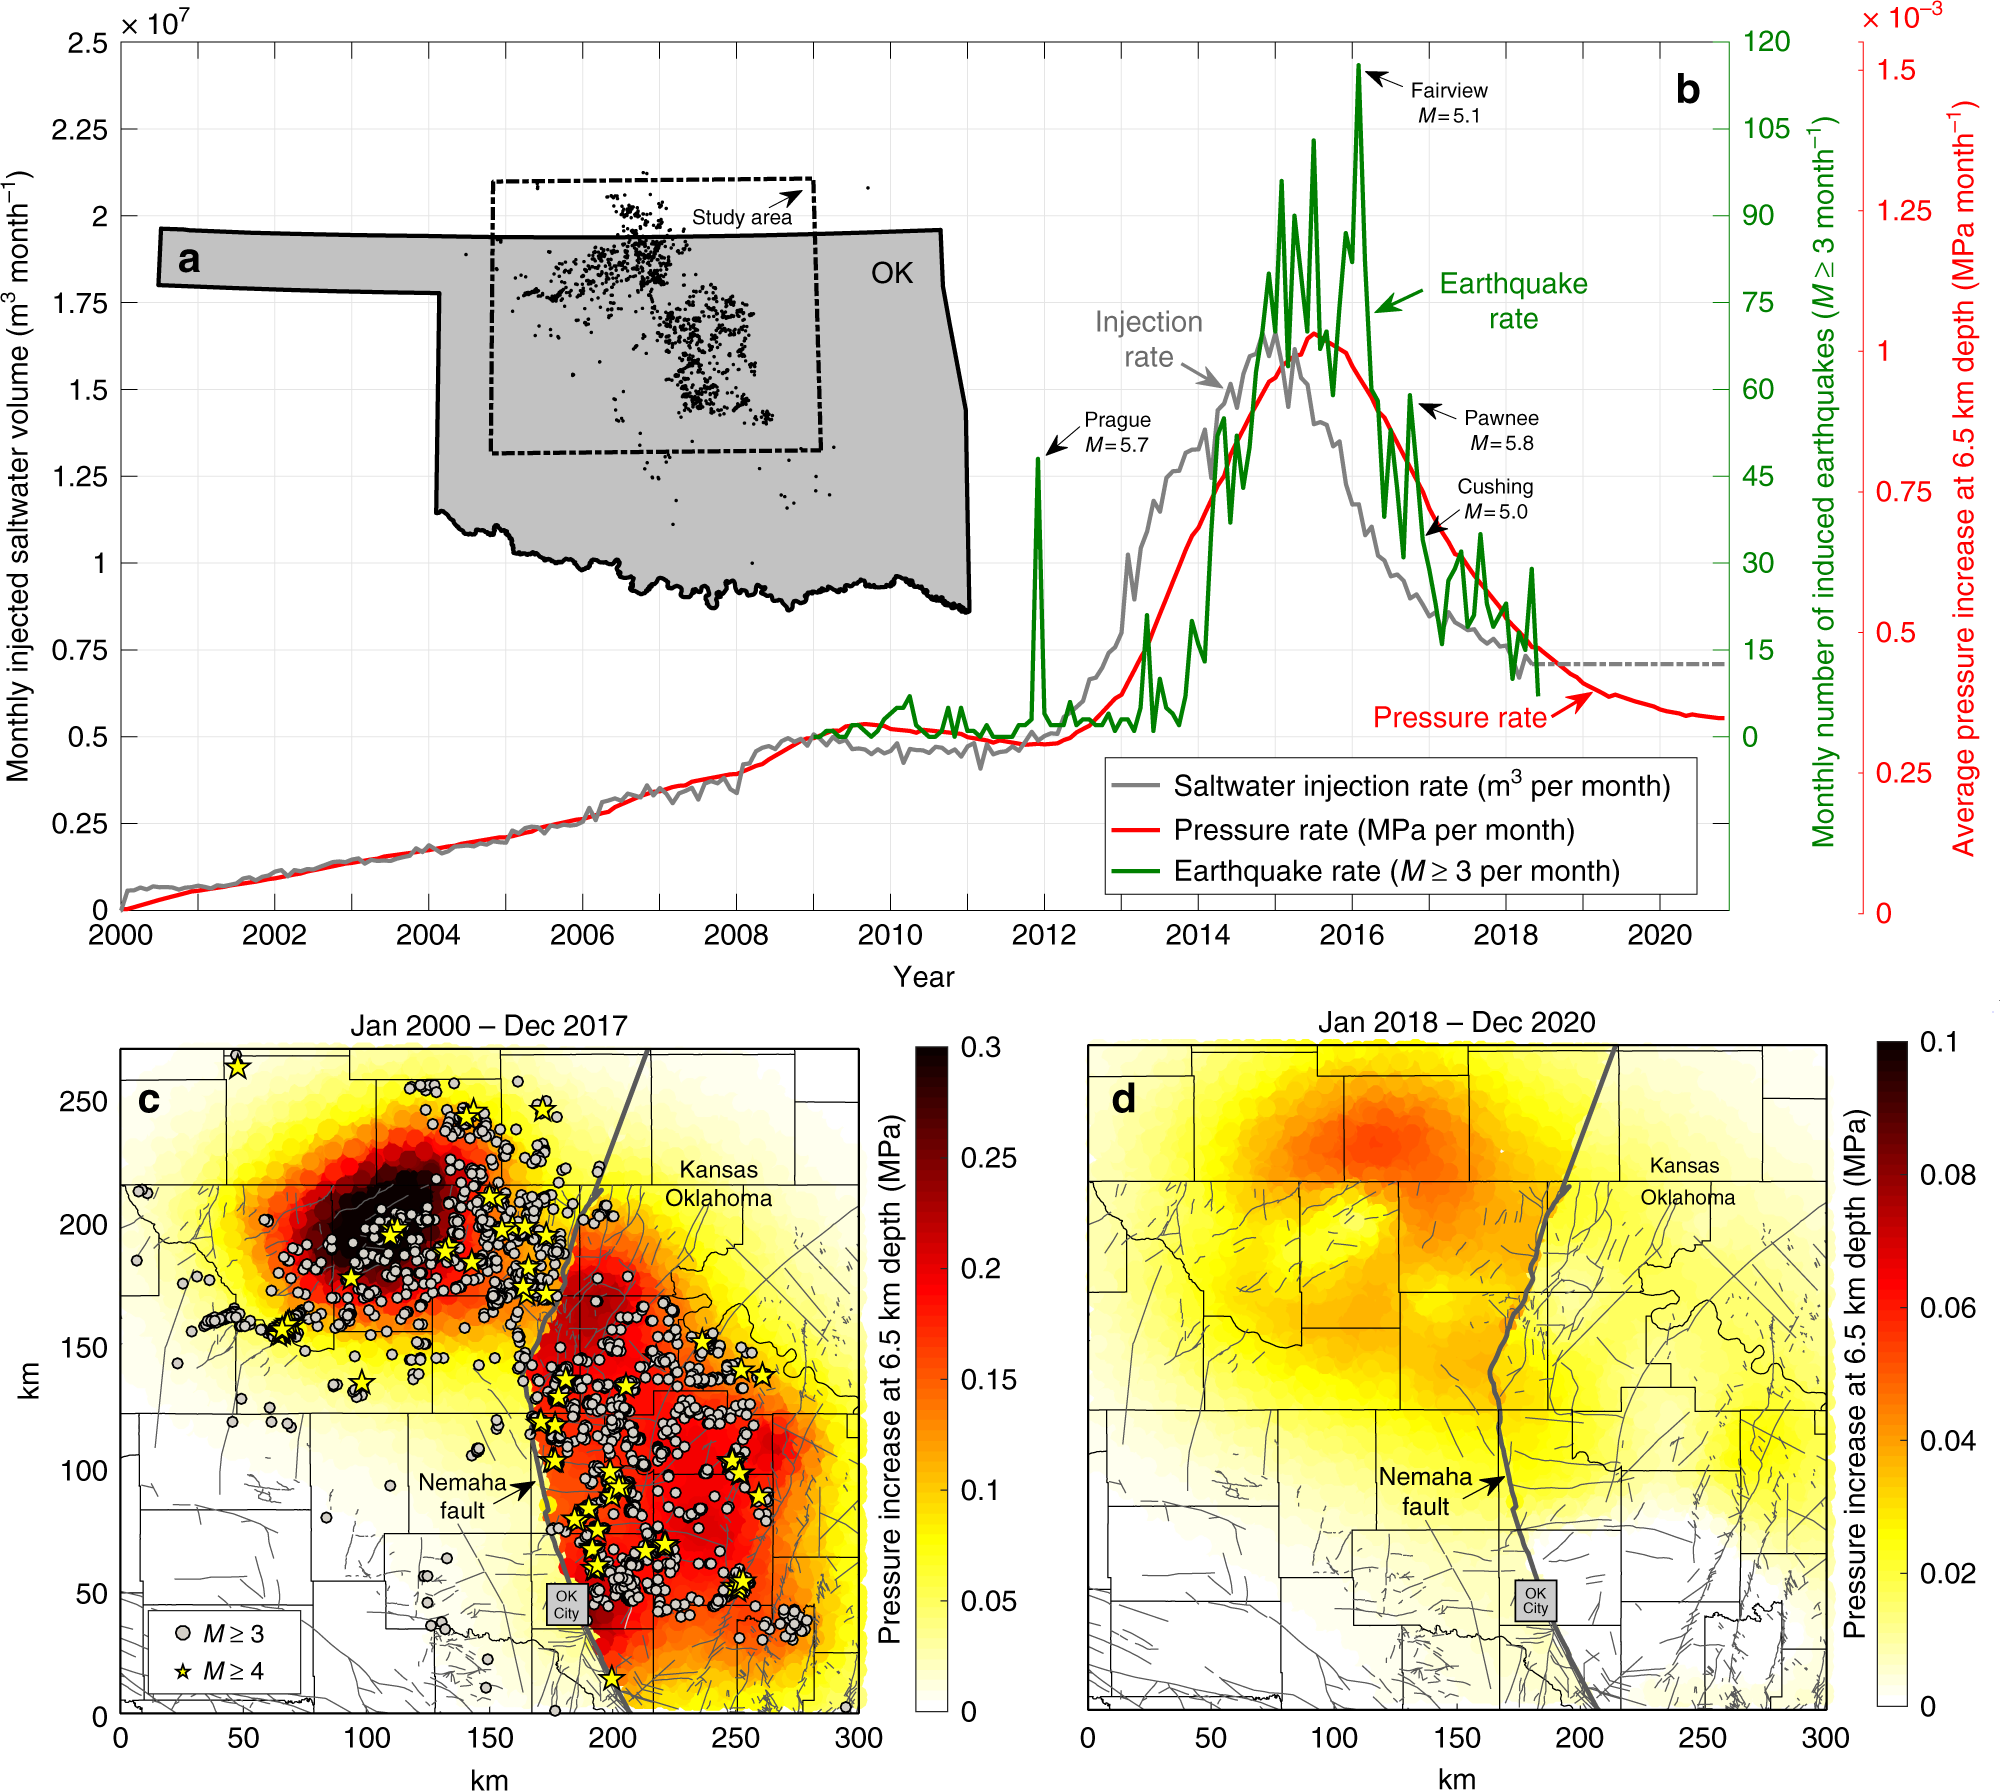 Physics-based forecasting of man-made earthquake hazards in ... on map of volcanic activity, map of radon, map of volcanoes, map of radiation, map of hail, map of coastal areas, map of flooding, map of crime statistics, map of bridges, map of tunnels, map of water table, map of tornadoes,